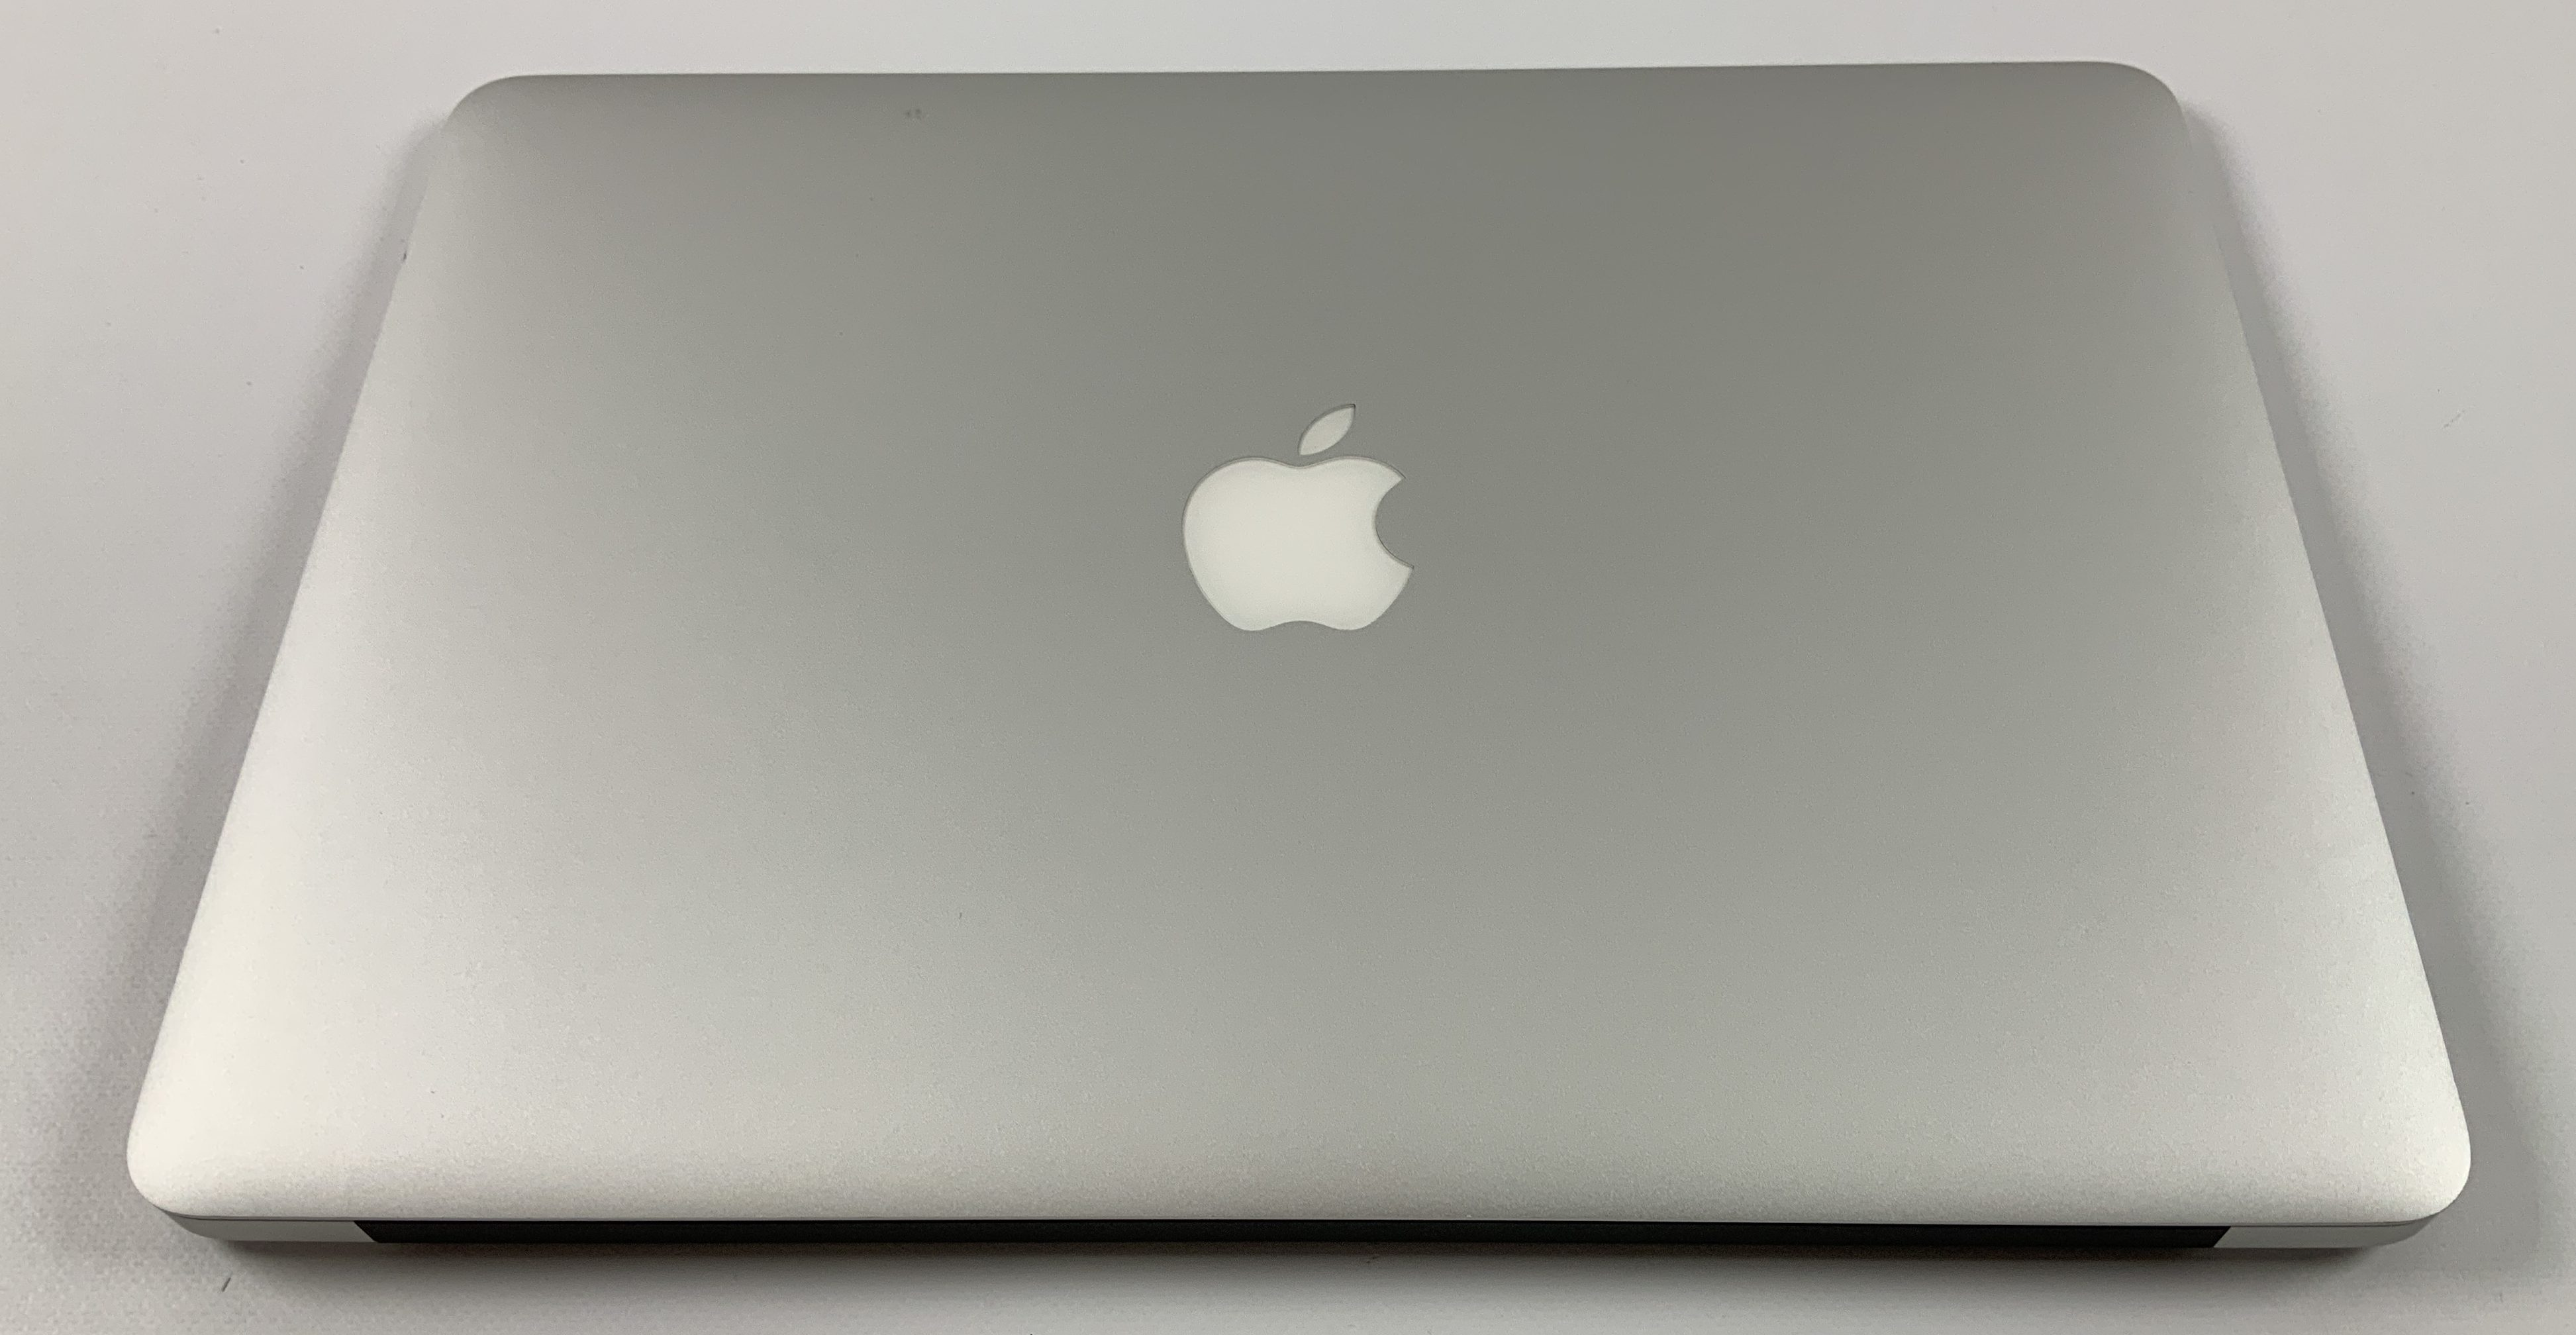 "MacBook Air 13"" Early 2015 (Intel Core i5 1.6 GHz 8 GB RAM 256 GB SSD), Intel Core i5 1.6 GHz, 8 GB RAM, 256 GB SSD, Afbeelding 4"